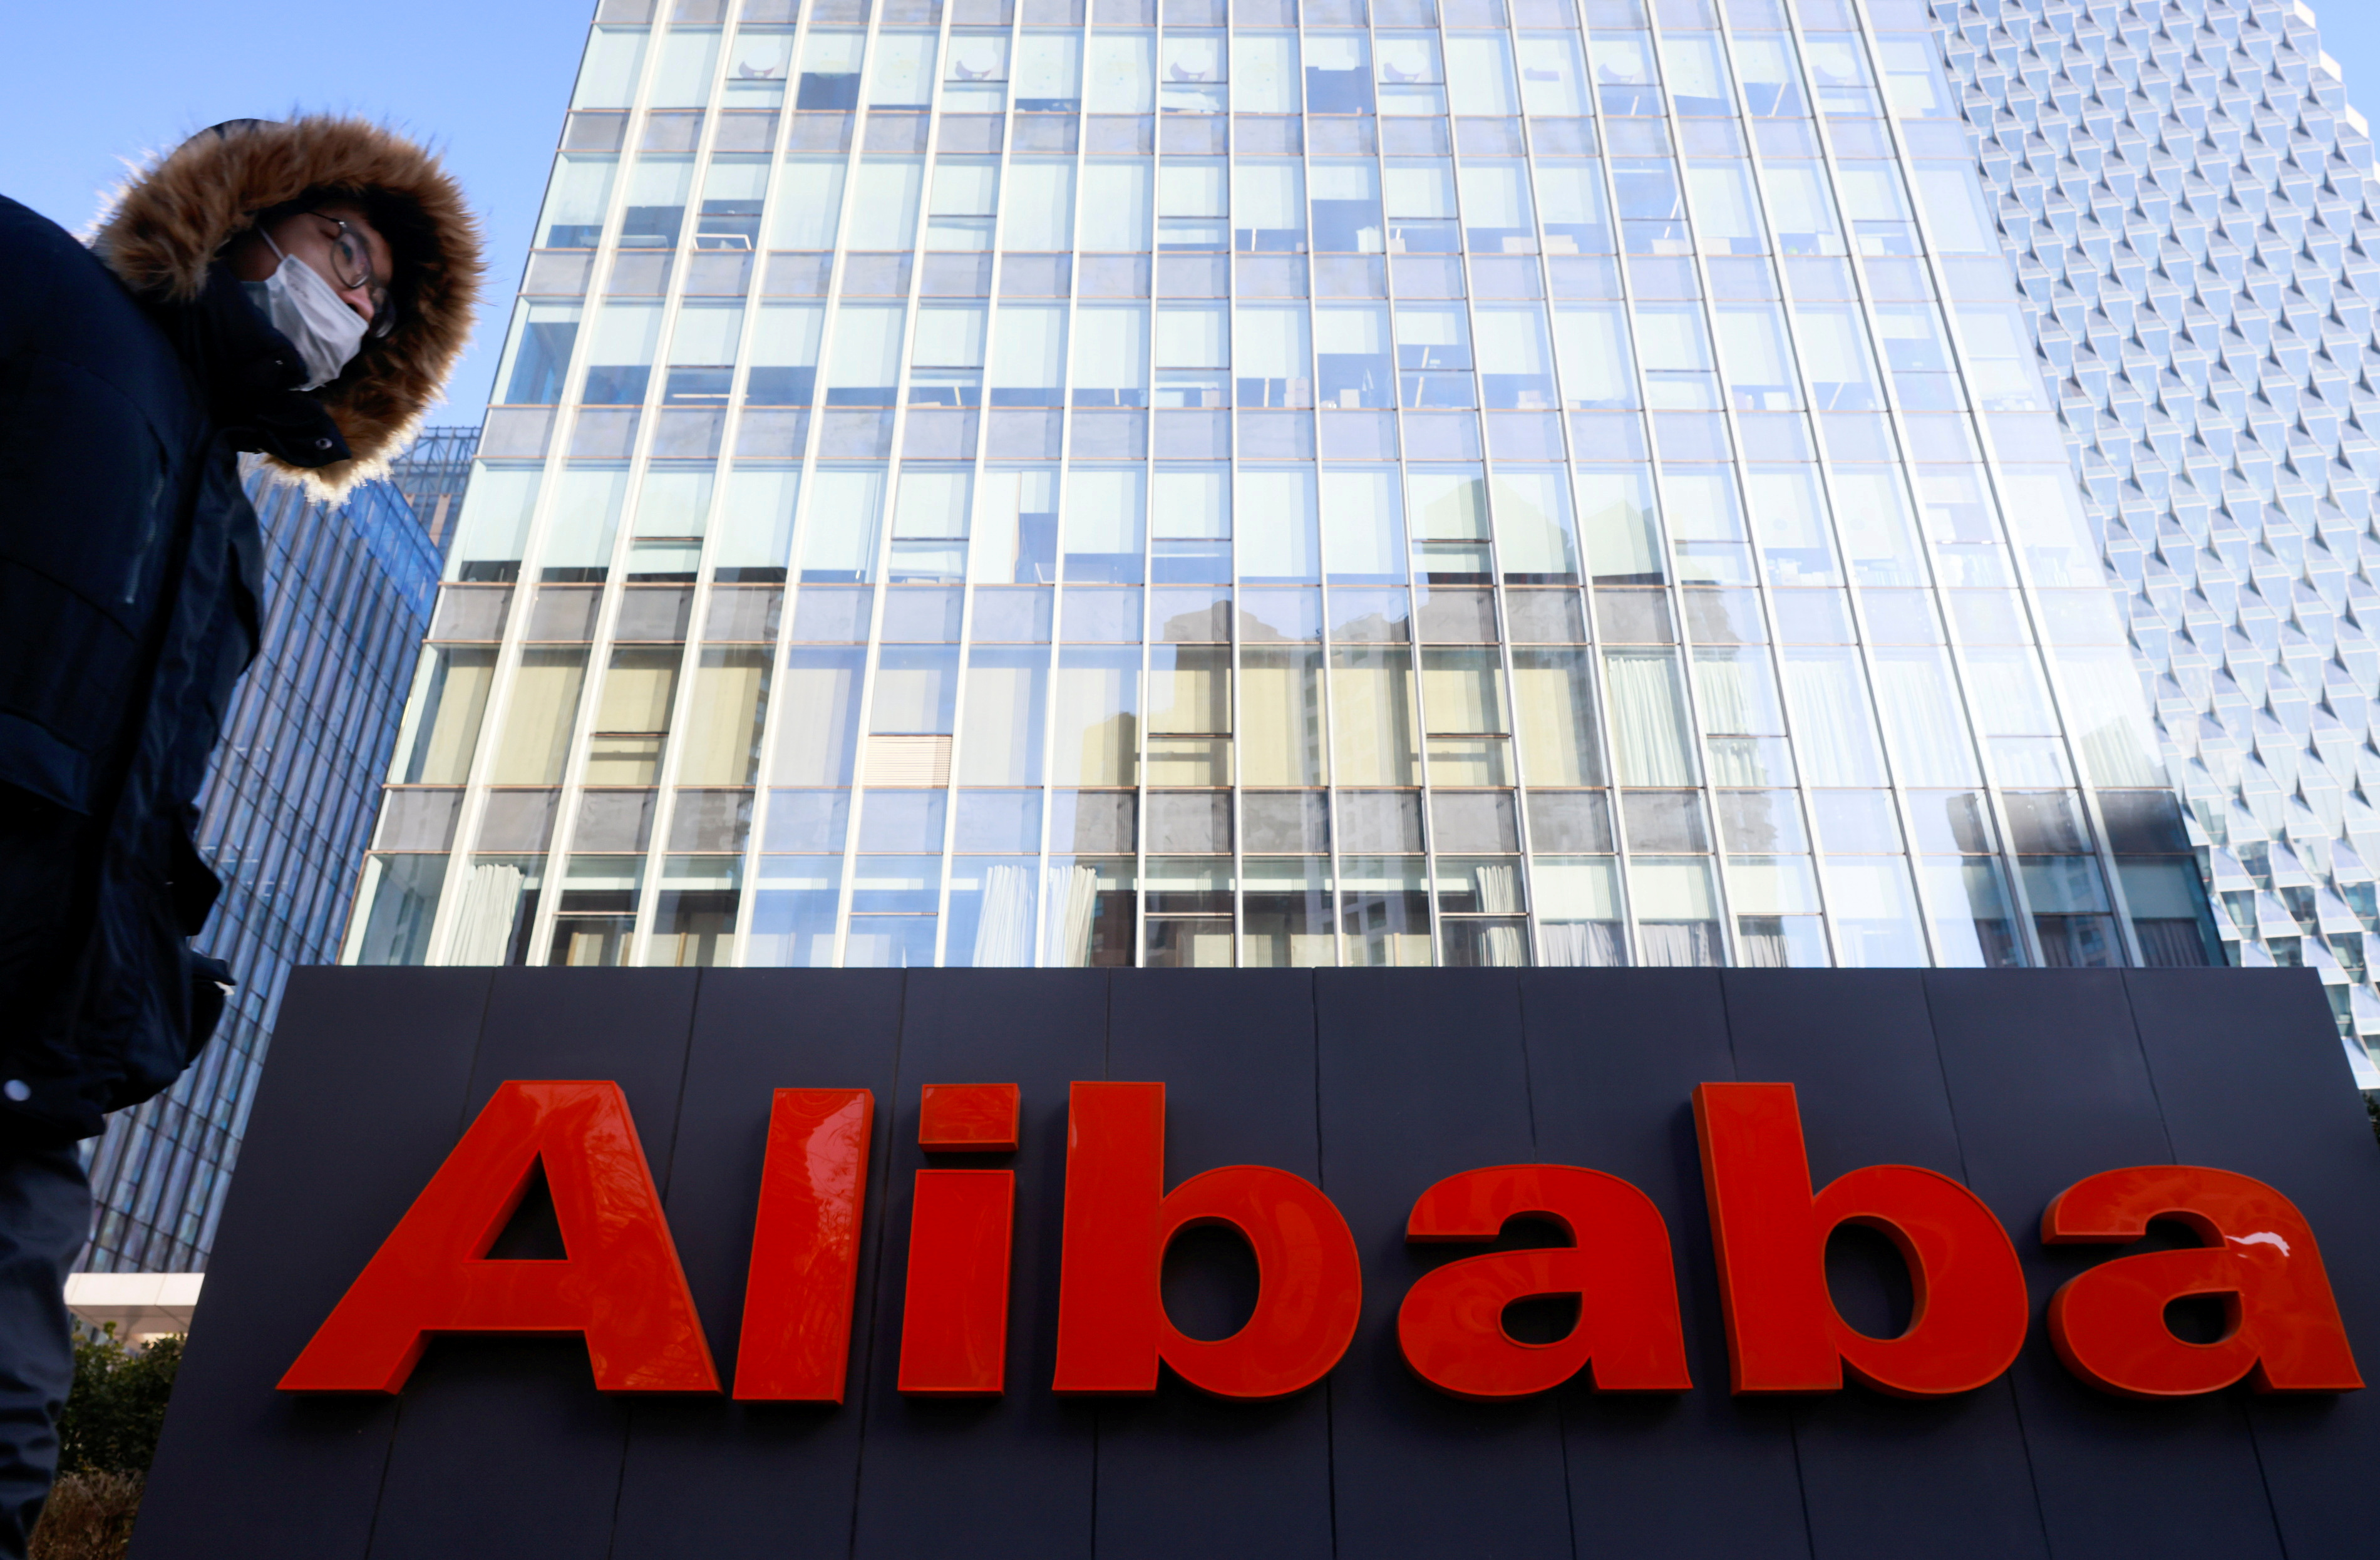 The logo of Alibaba Group is seen at its office in Beijing, China January 5, 2021. REUTERS/Thomas Peter/File Photo